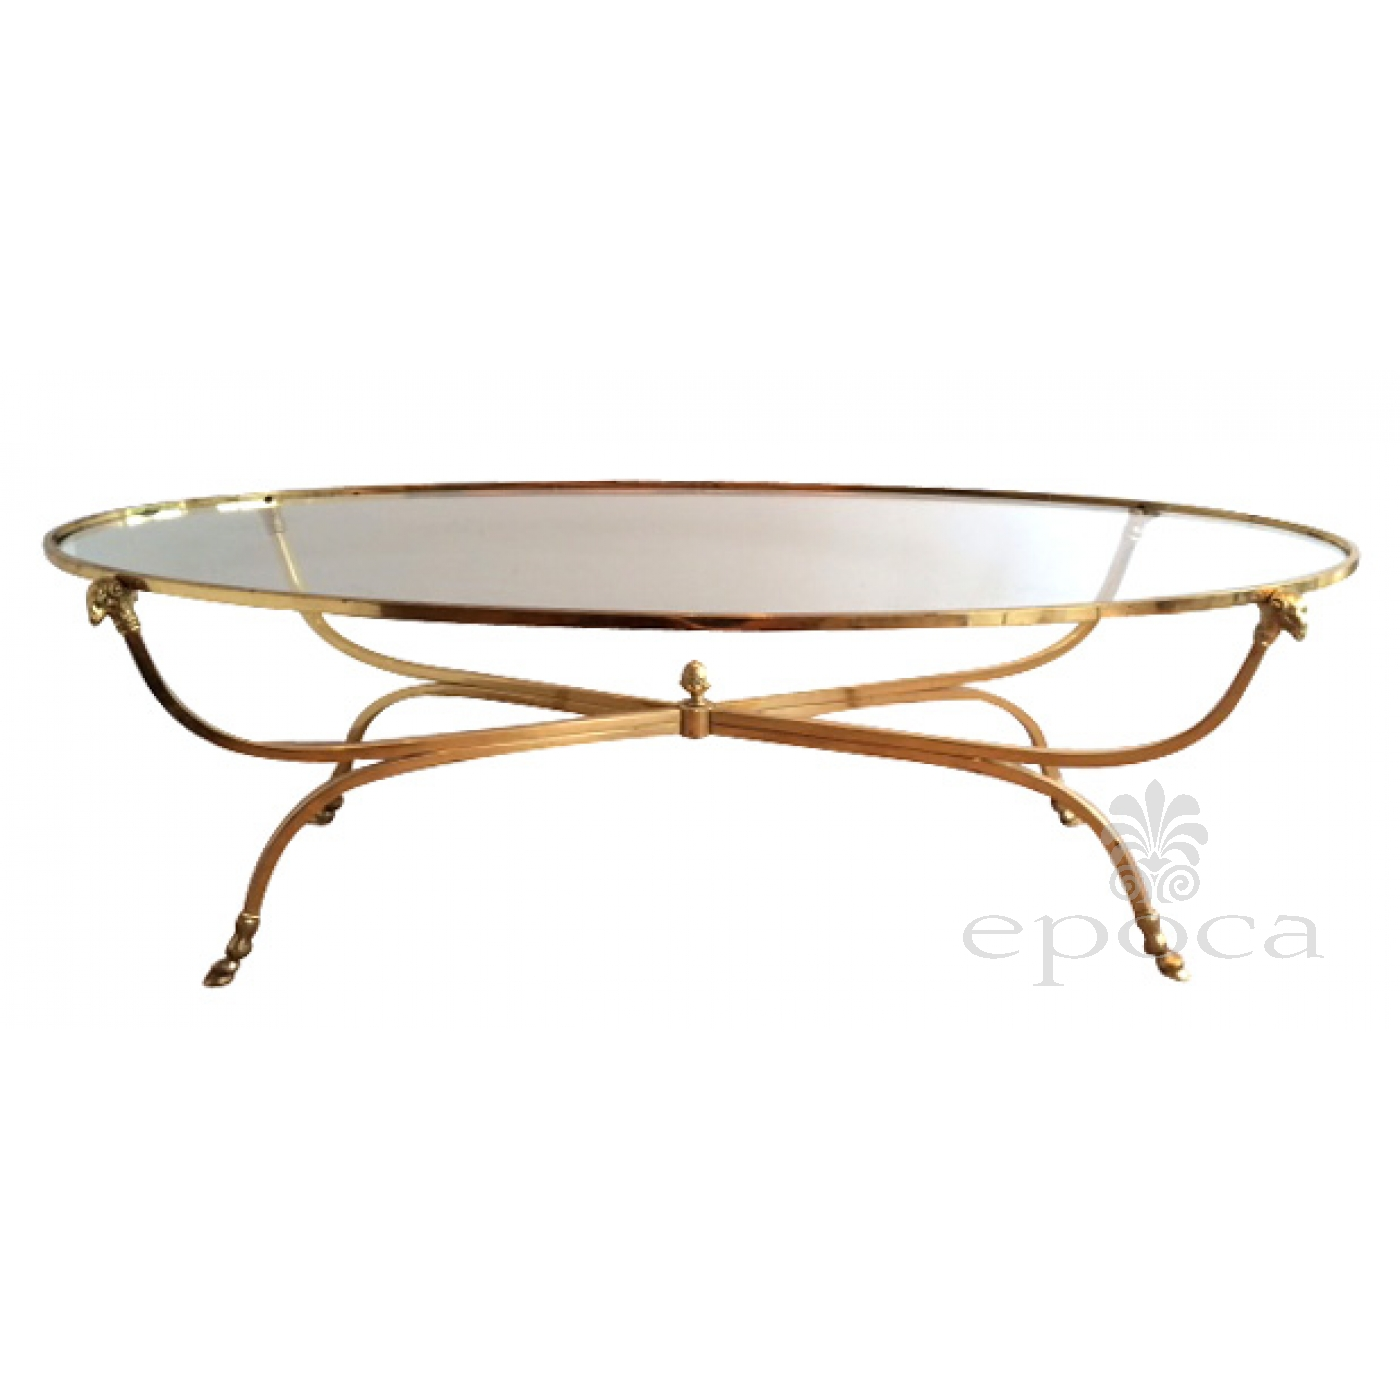 Jansen Coffee Table A Stylish And Good Quality French Mid Century Modern Brass Oval